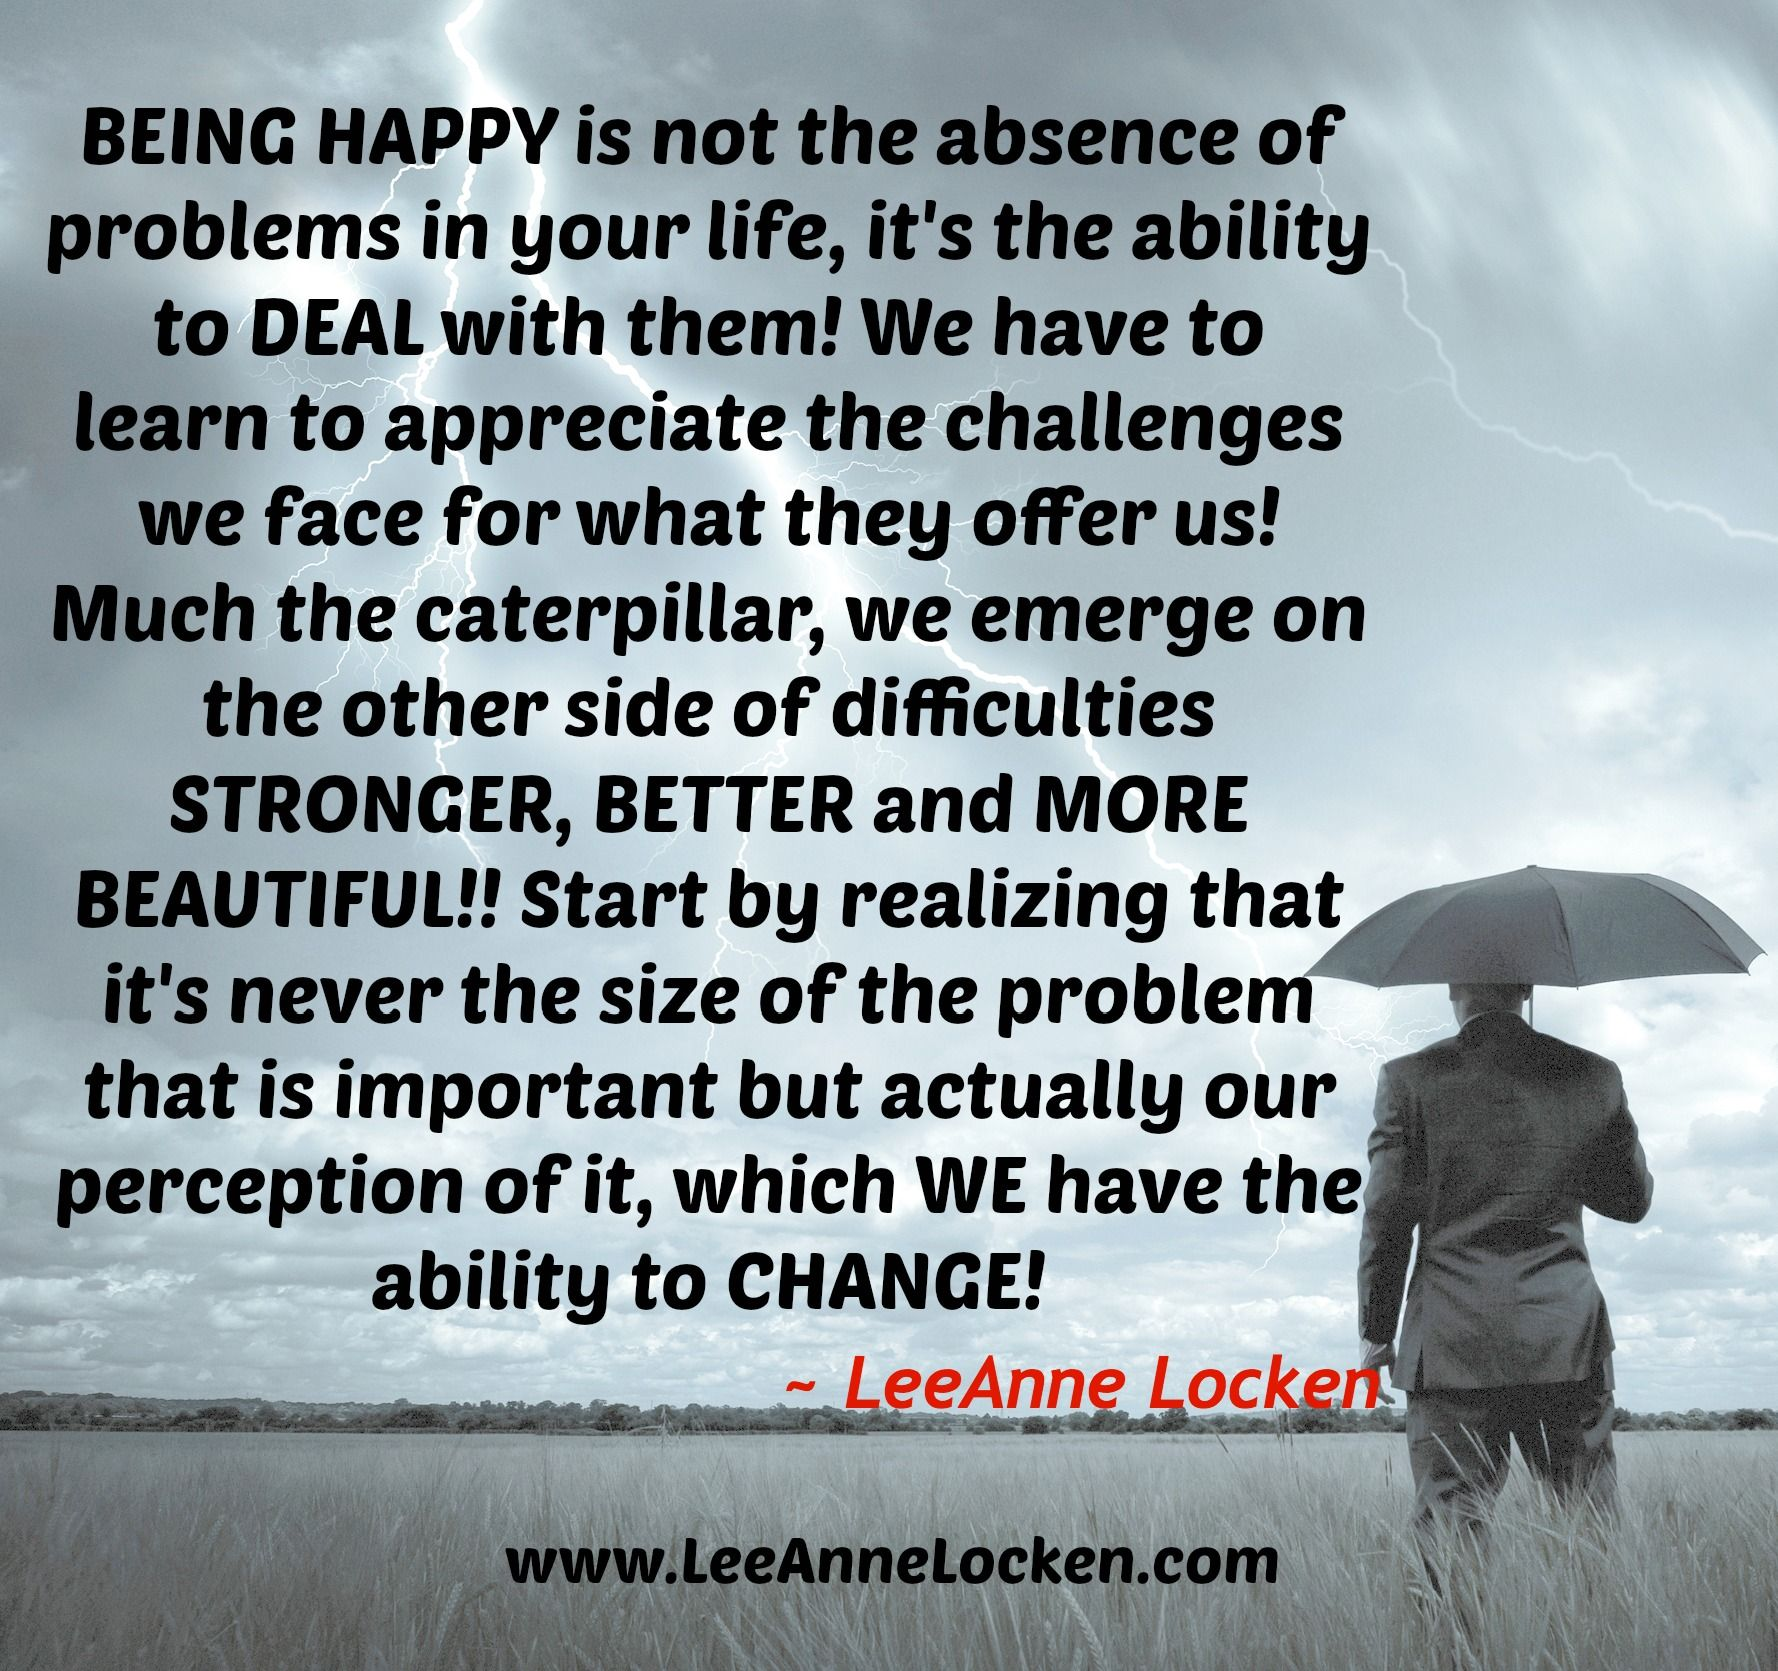 Pin By Veena On Inspirational Quotes: Dealing With #Difficulties? Here's How To Find #Happiness